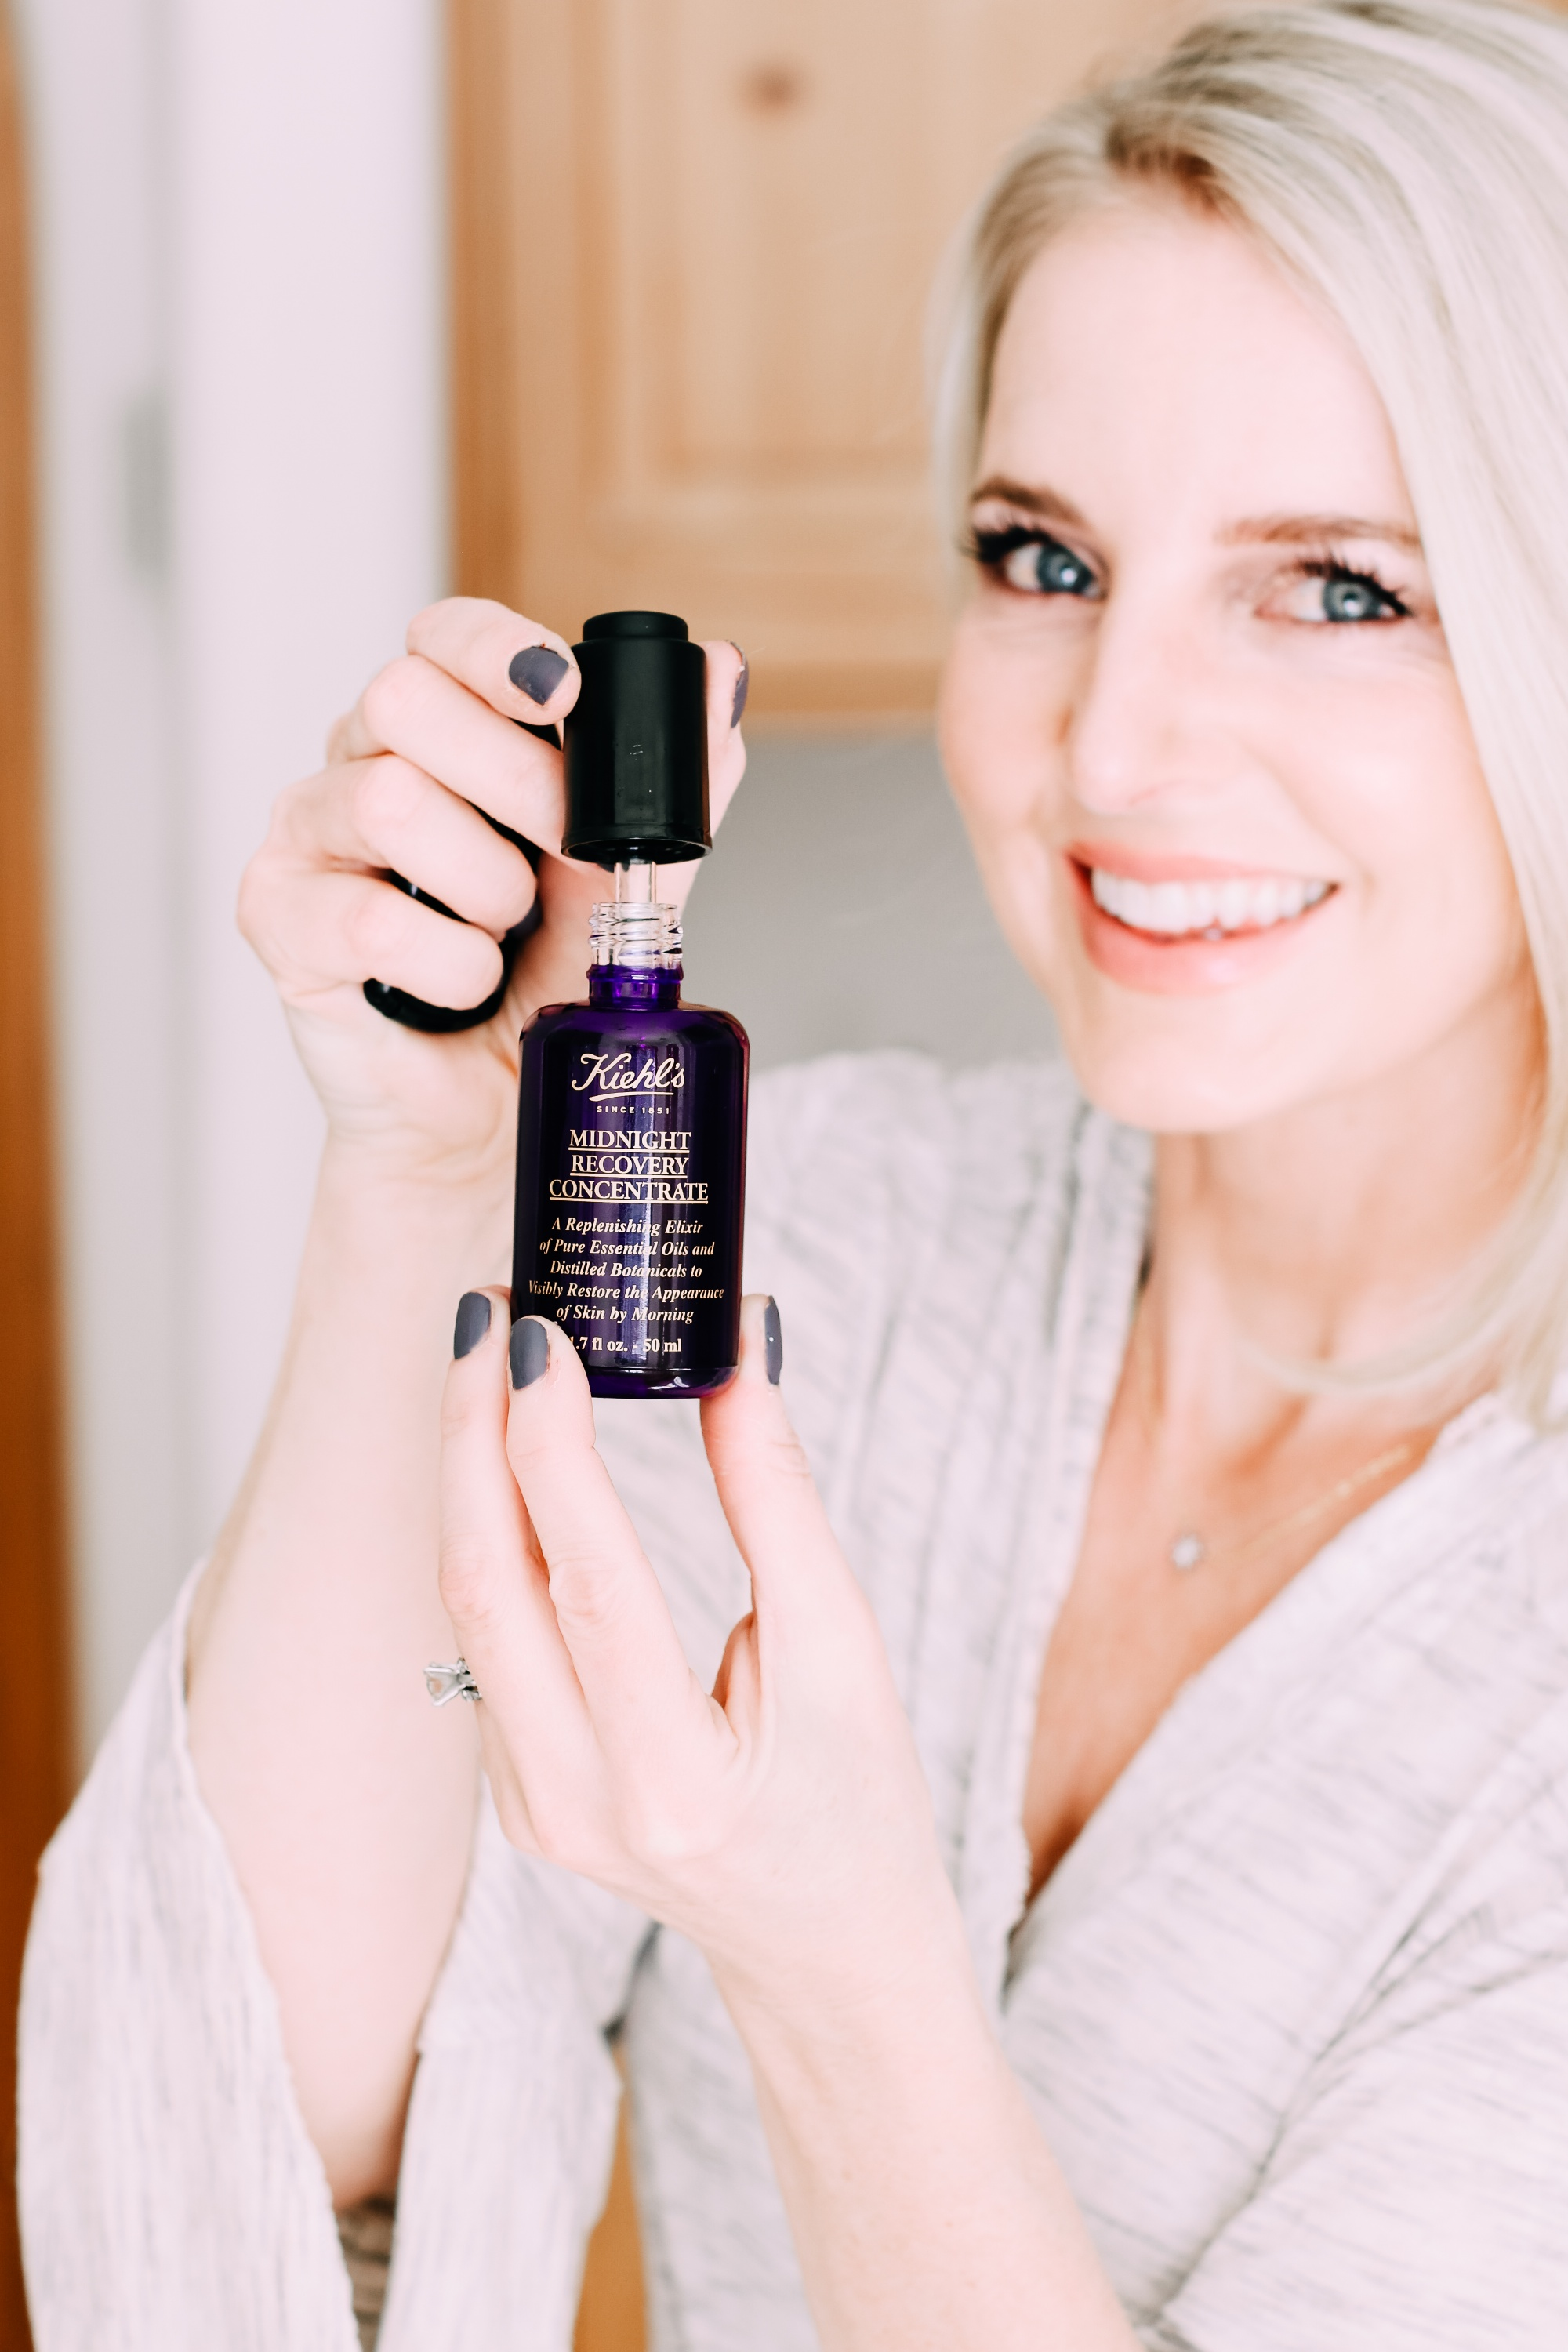 Skincare Gifts, Erin busbee of Busbee Style holding the Midnight Recovery Concentrate Face Oil by Kiehl's from Nordstrom wearing a gray robe in Telluride, Colorado